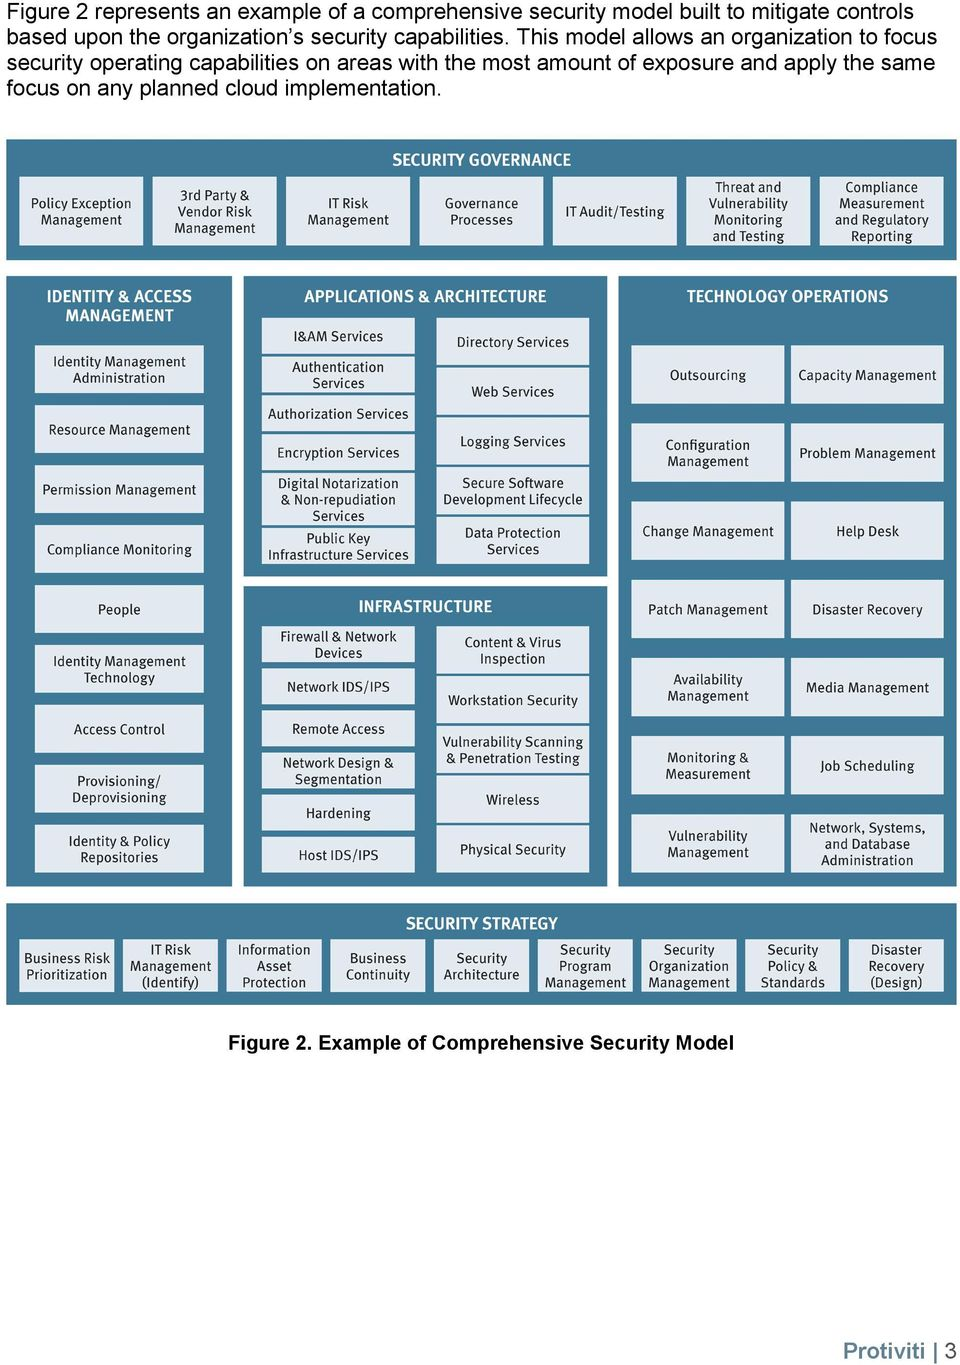 This model allows an organization to focus security operating capabilities on areas with the